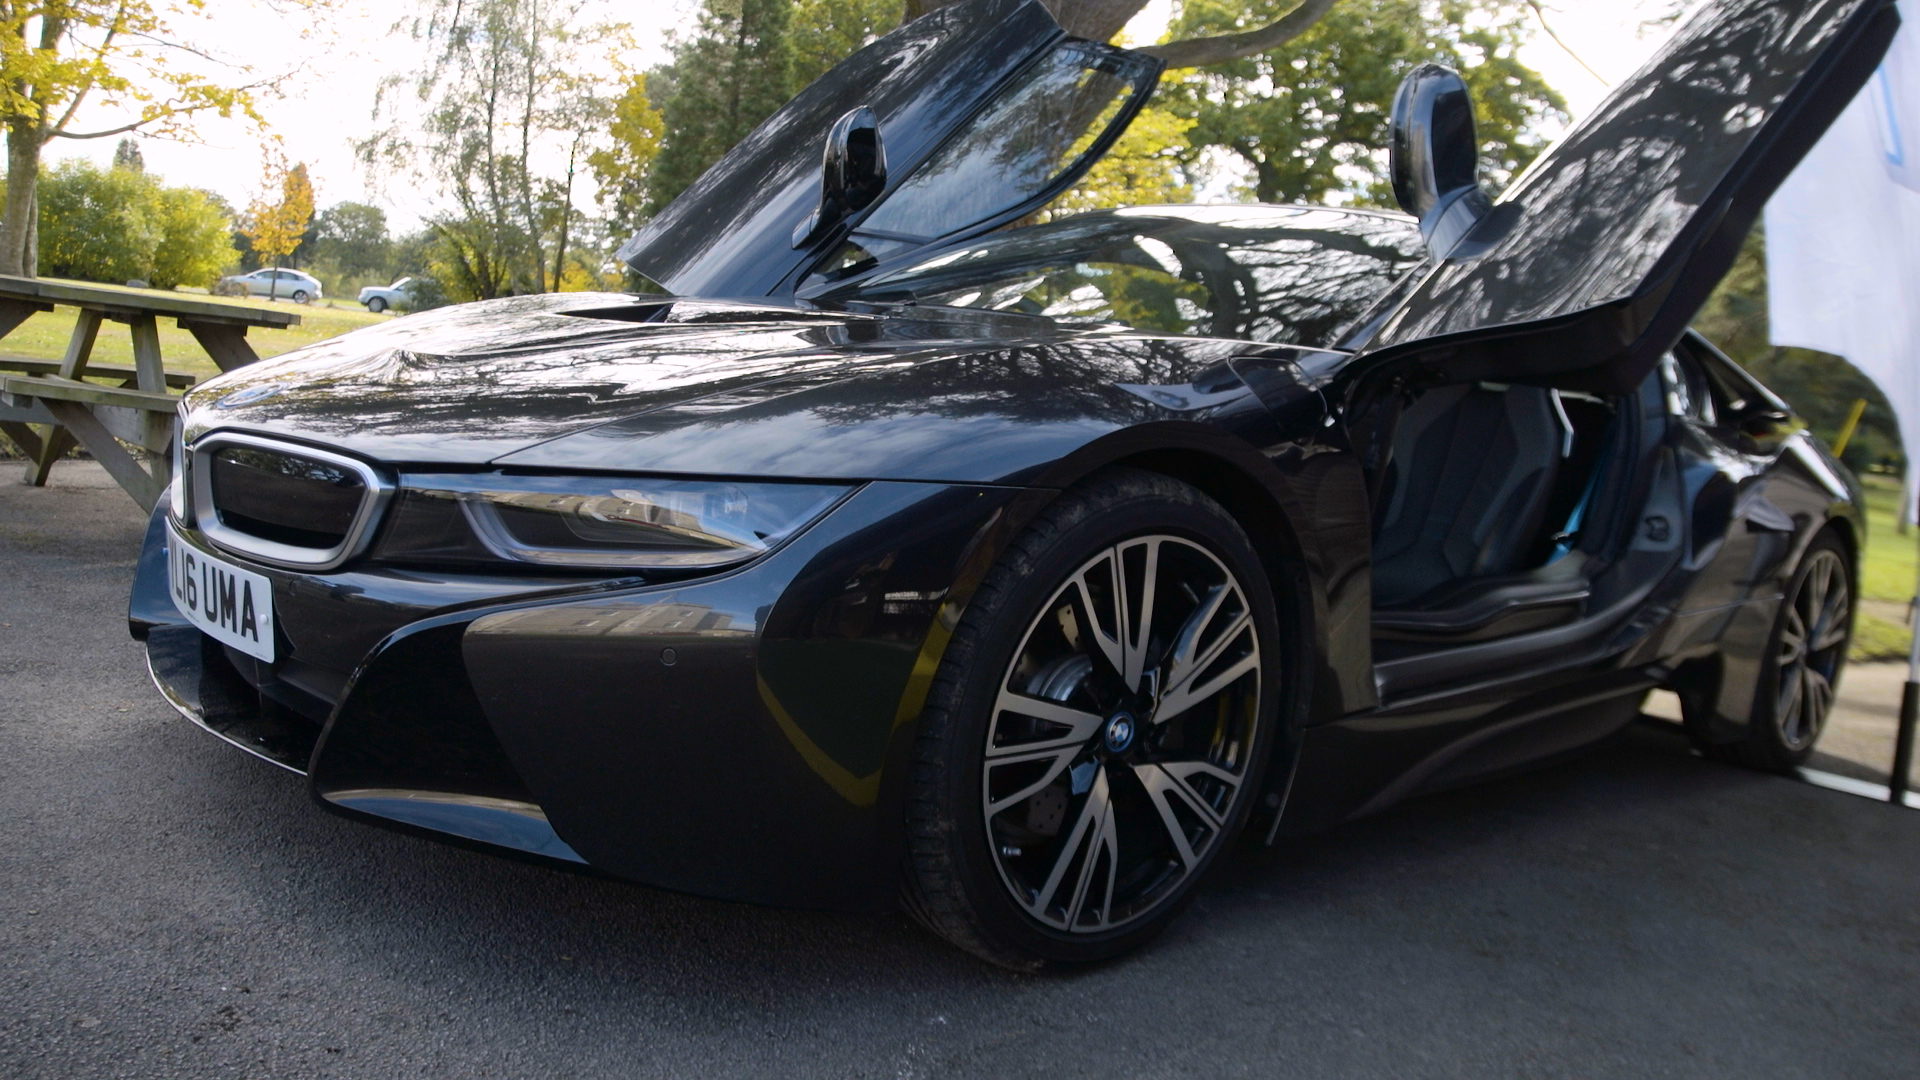 Ocean BMW's i8 hybrid electric car at Devon Green Expo 2016